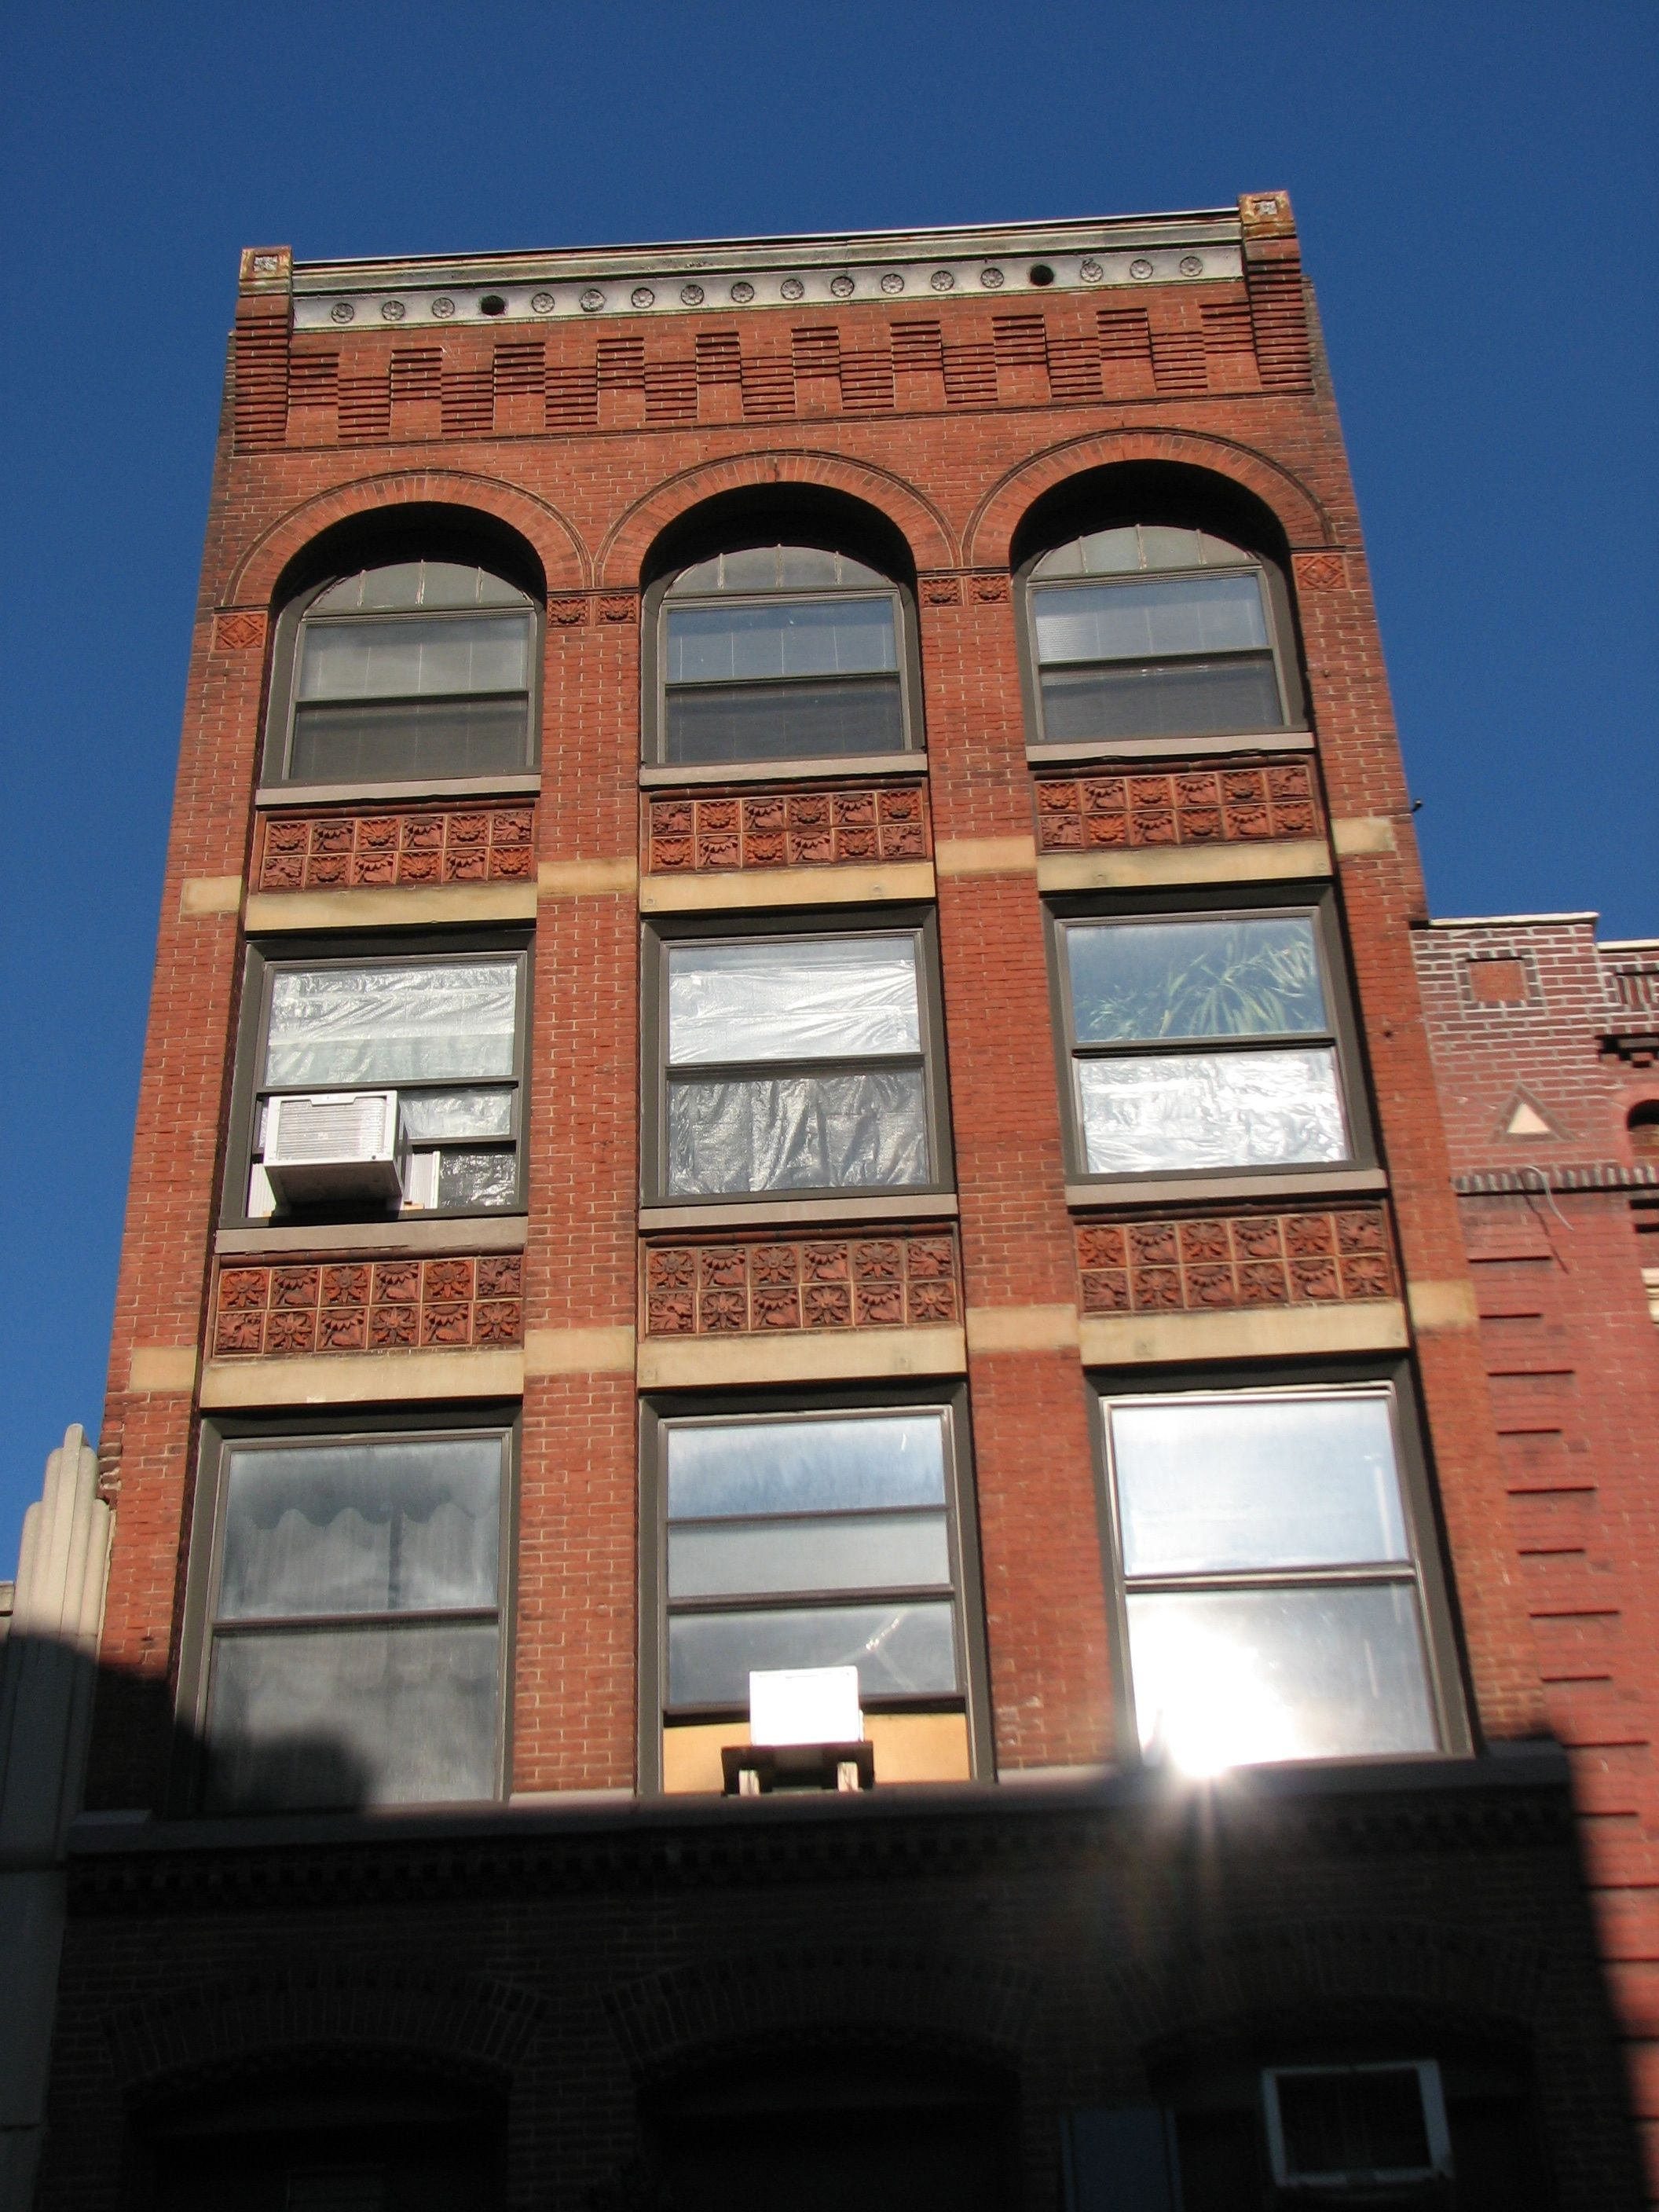 A commercial building on Sansom's north side features terra cotta tiles and corbelled brick.